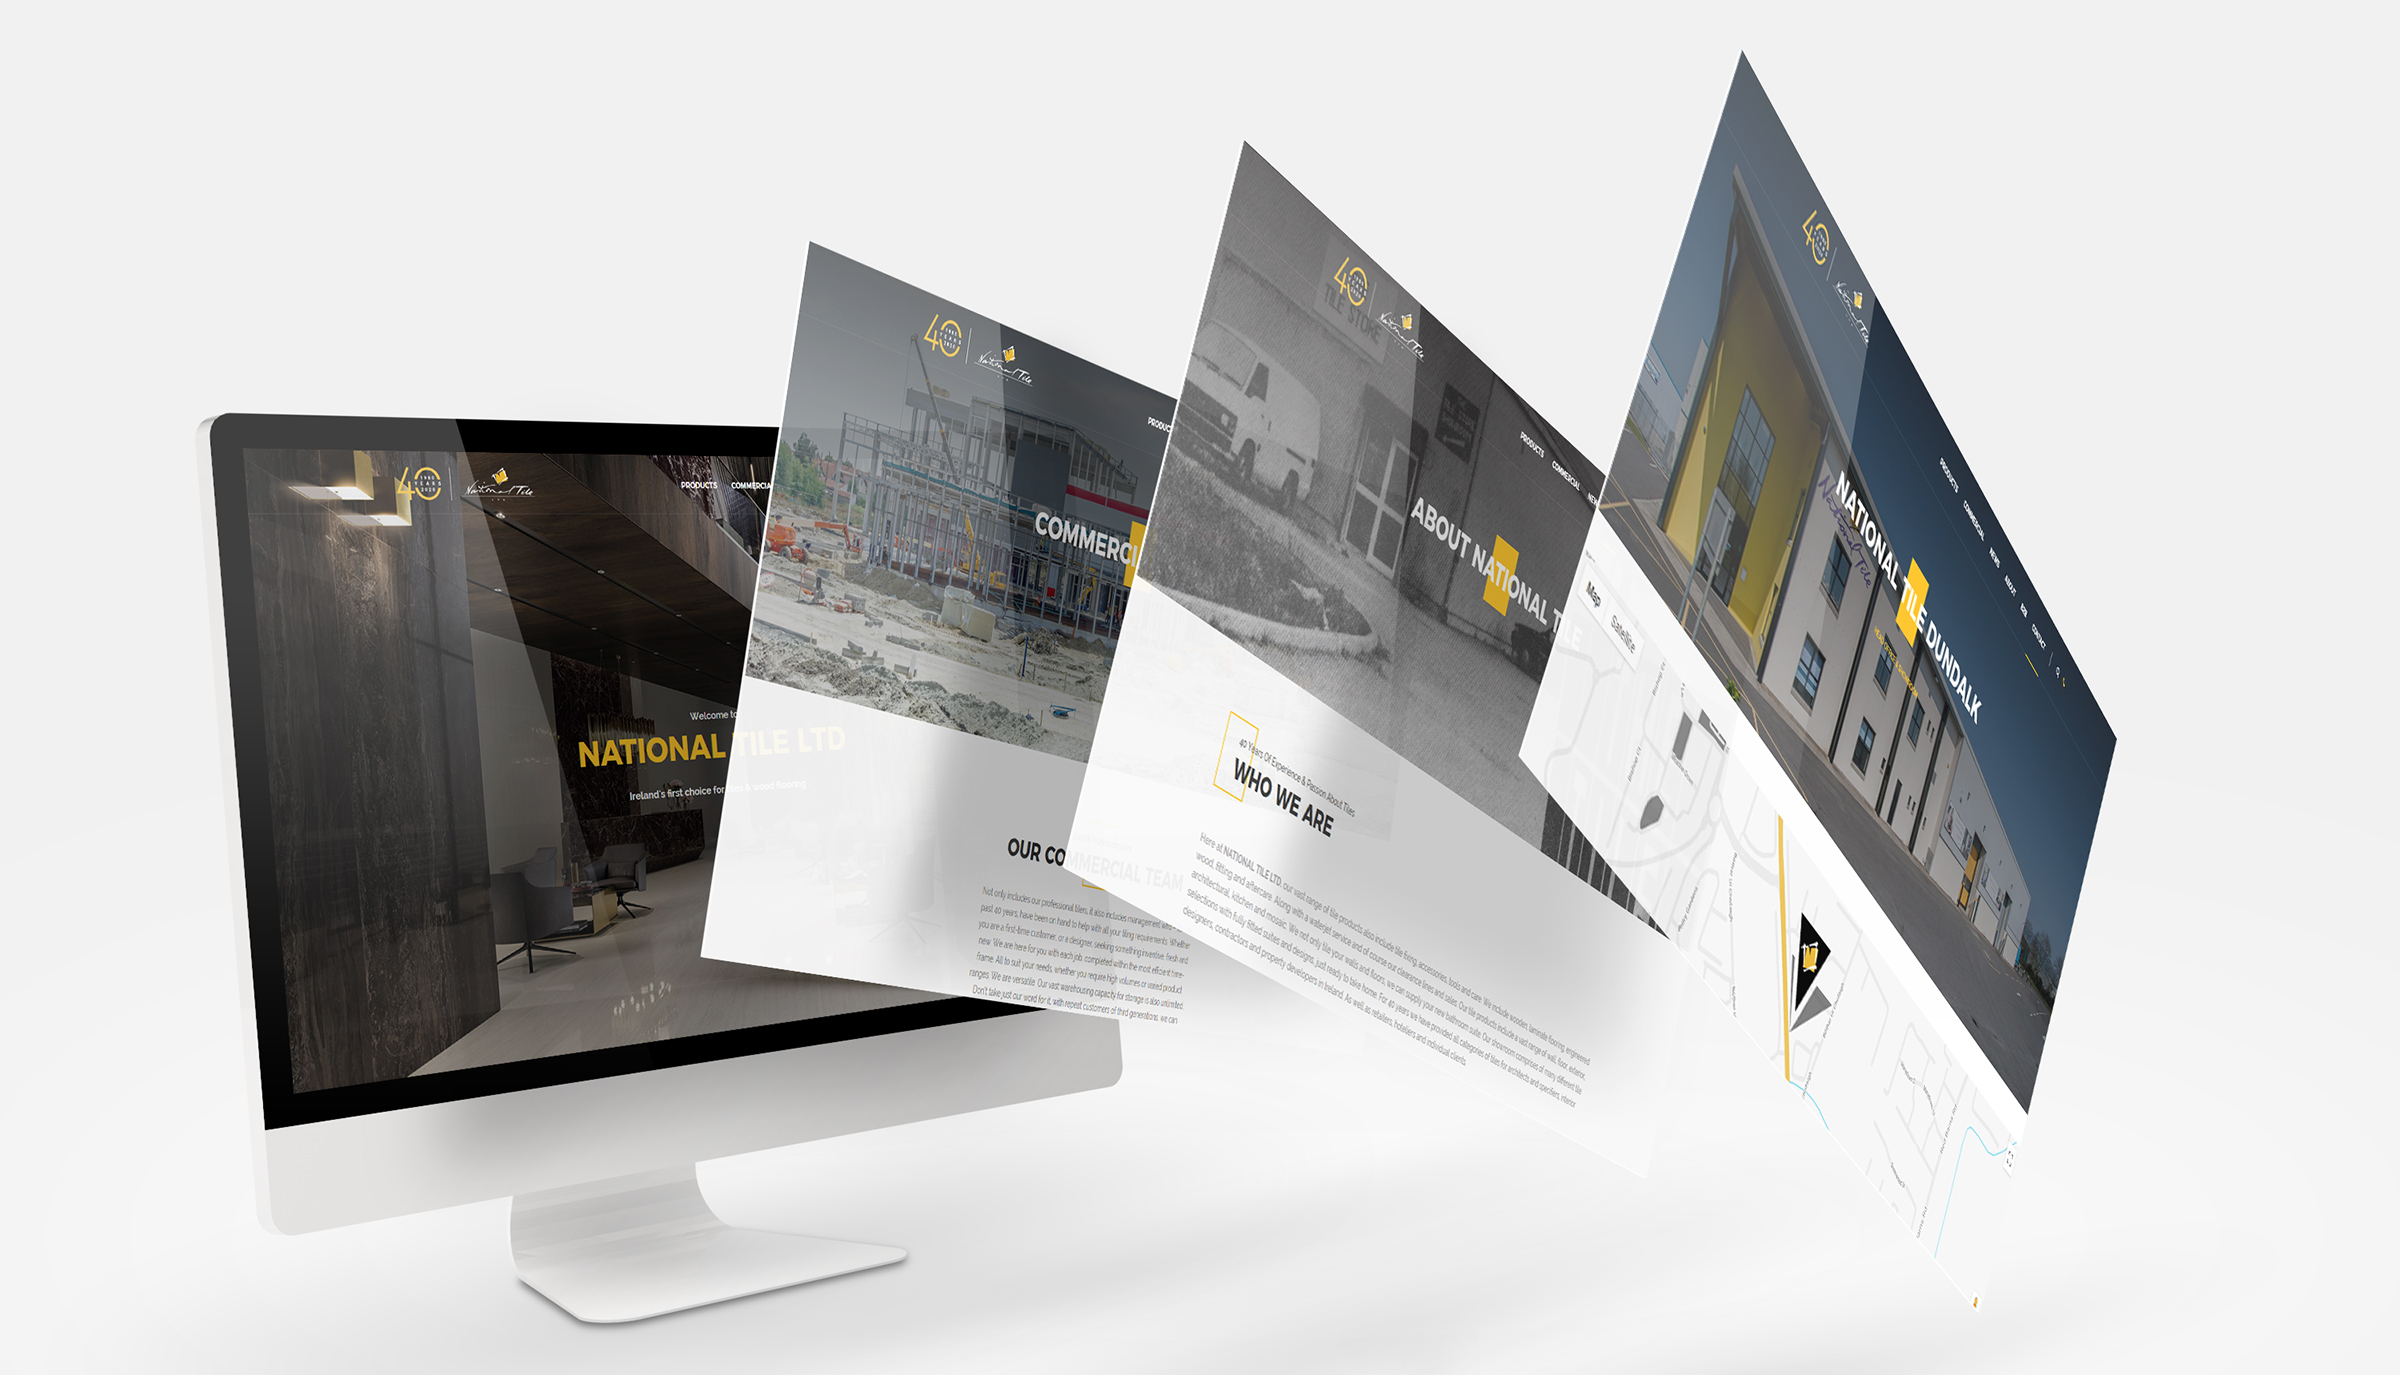 Website design for National Tile. Main pages